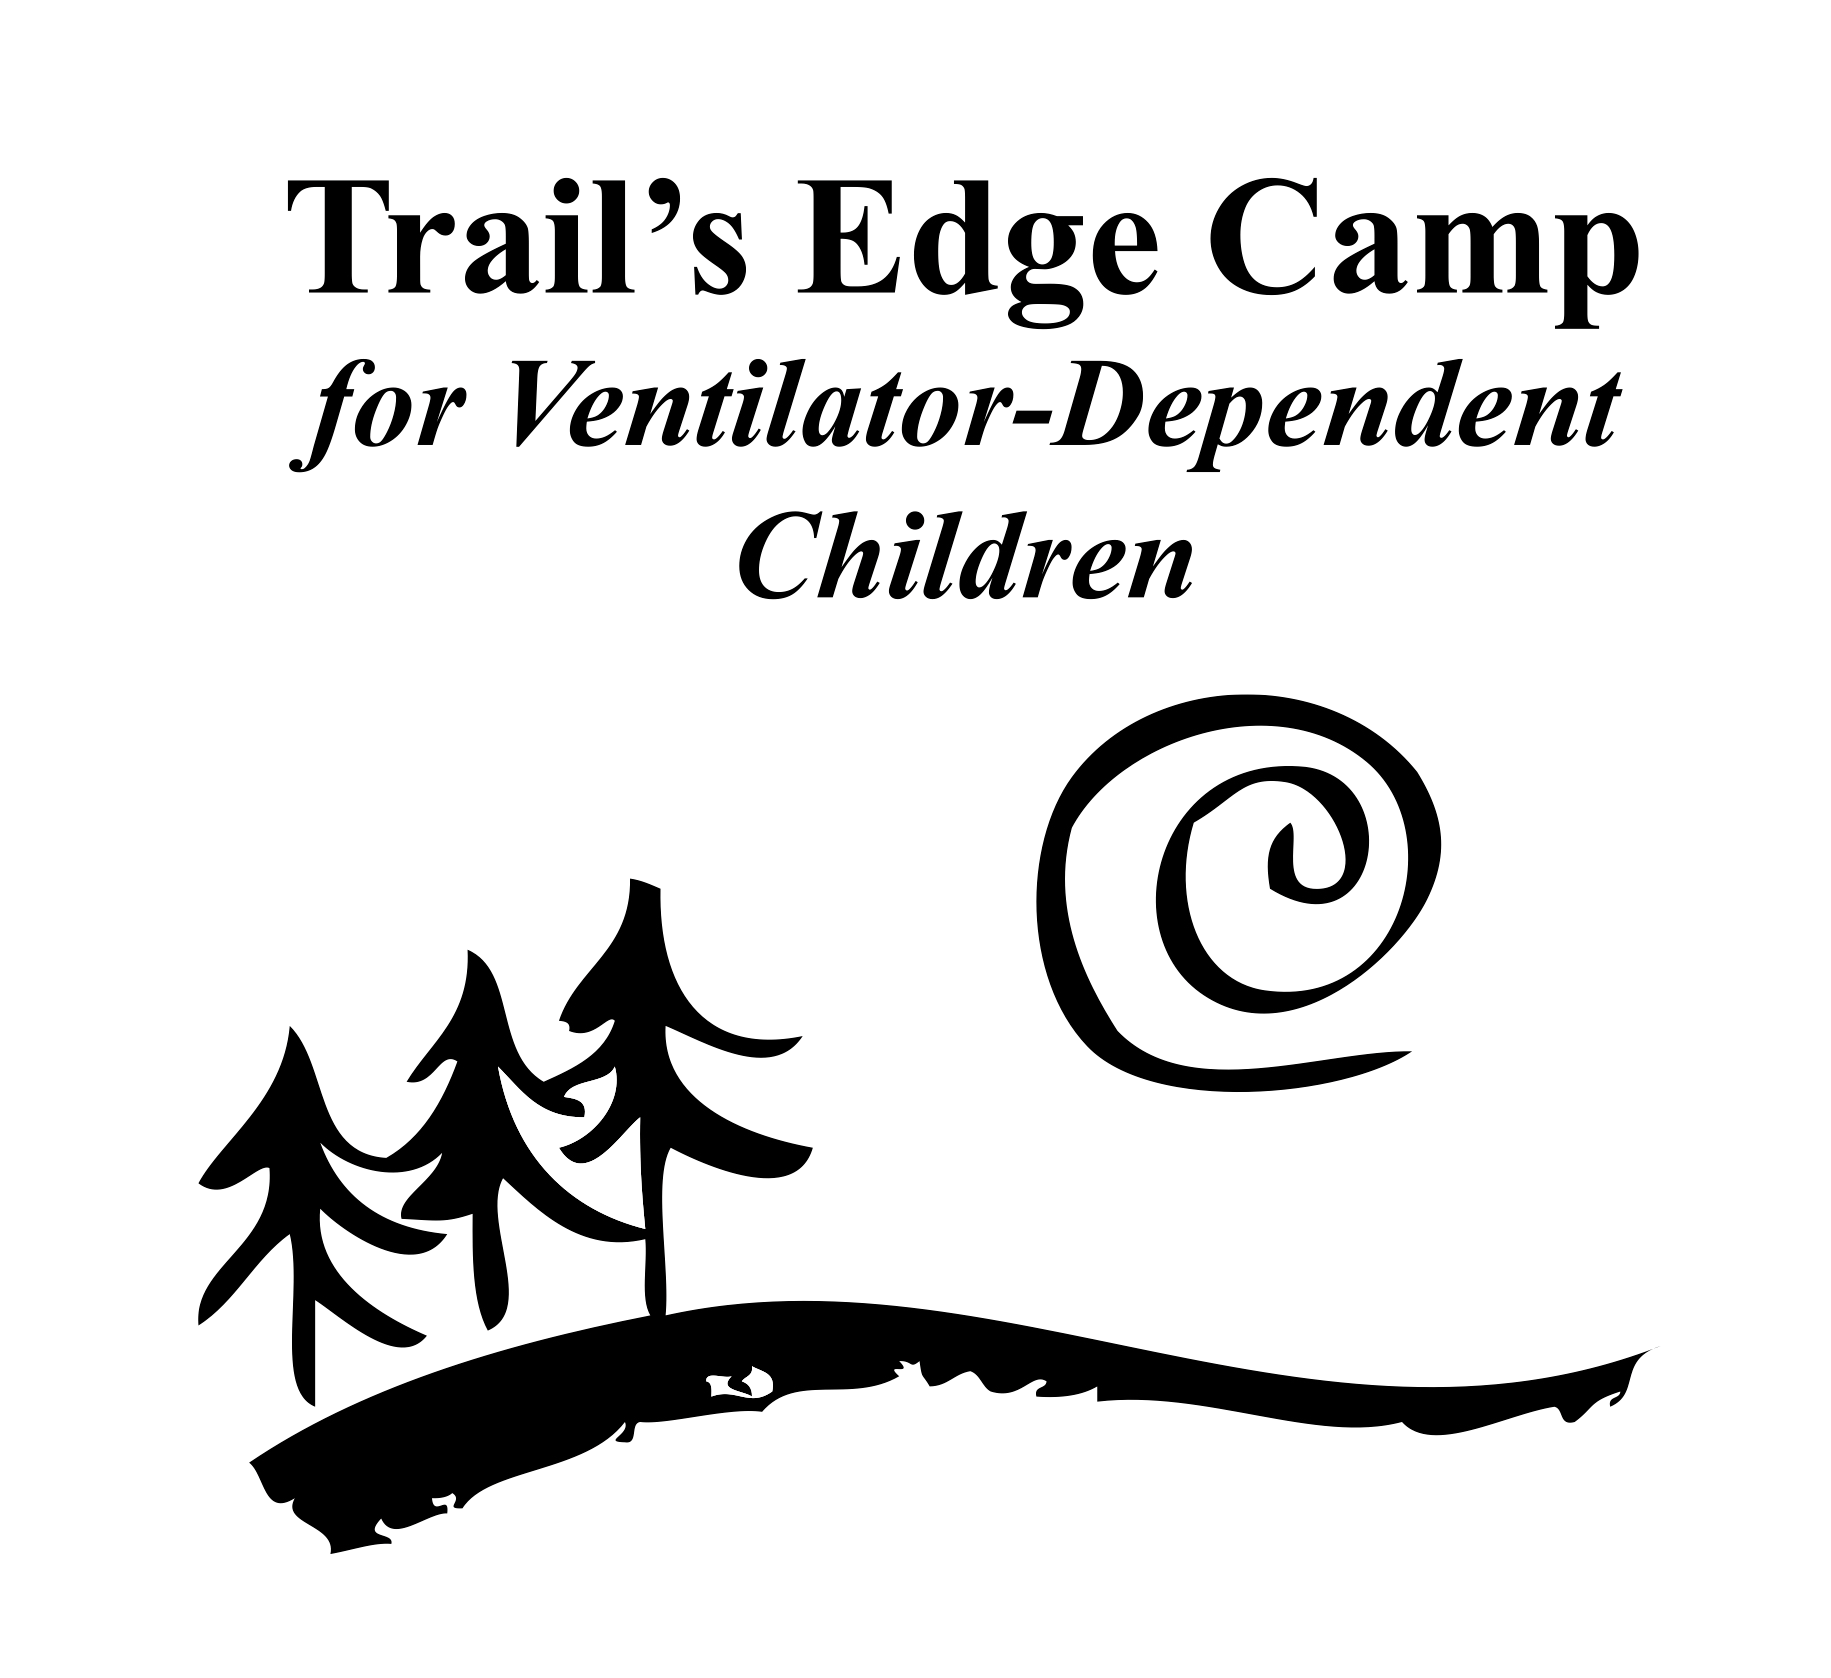 Trail's Edge Camp for Ventilator-Dependent Children